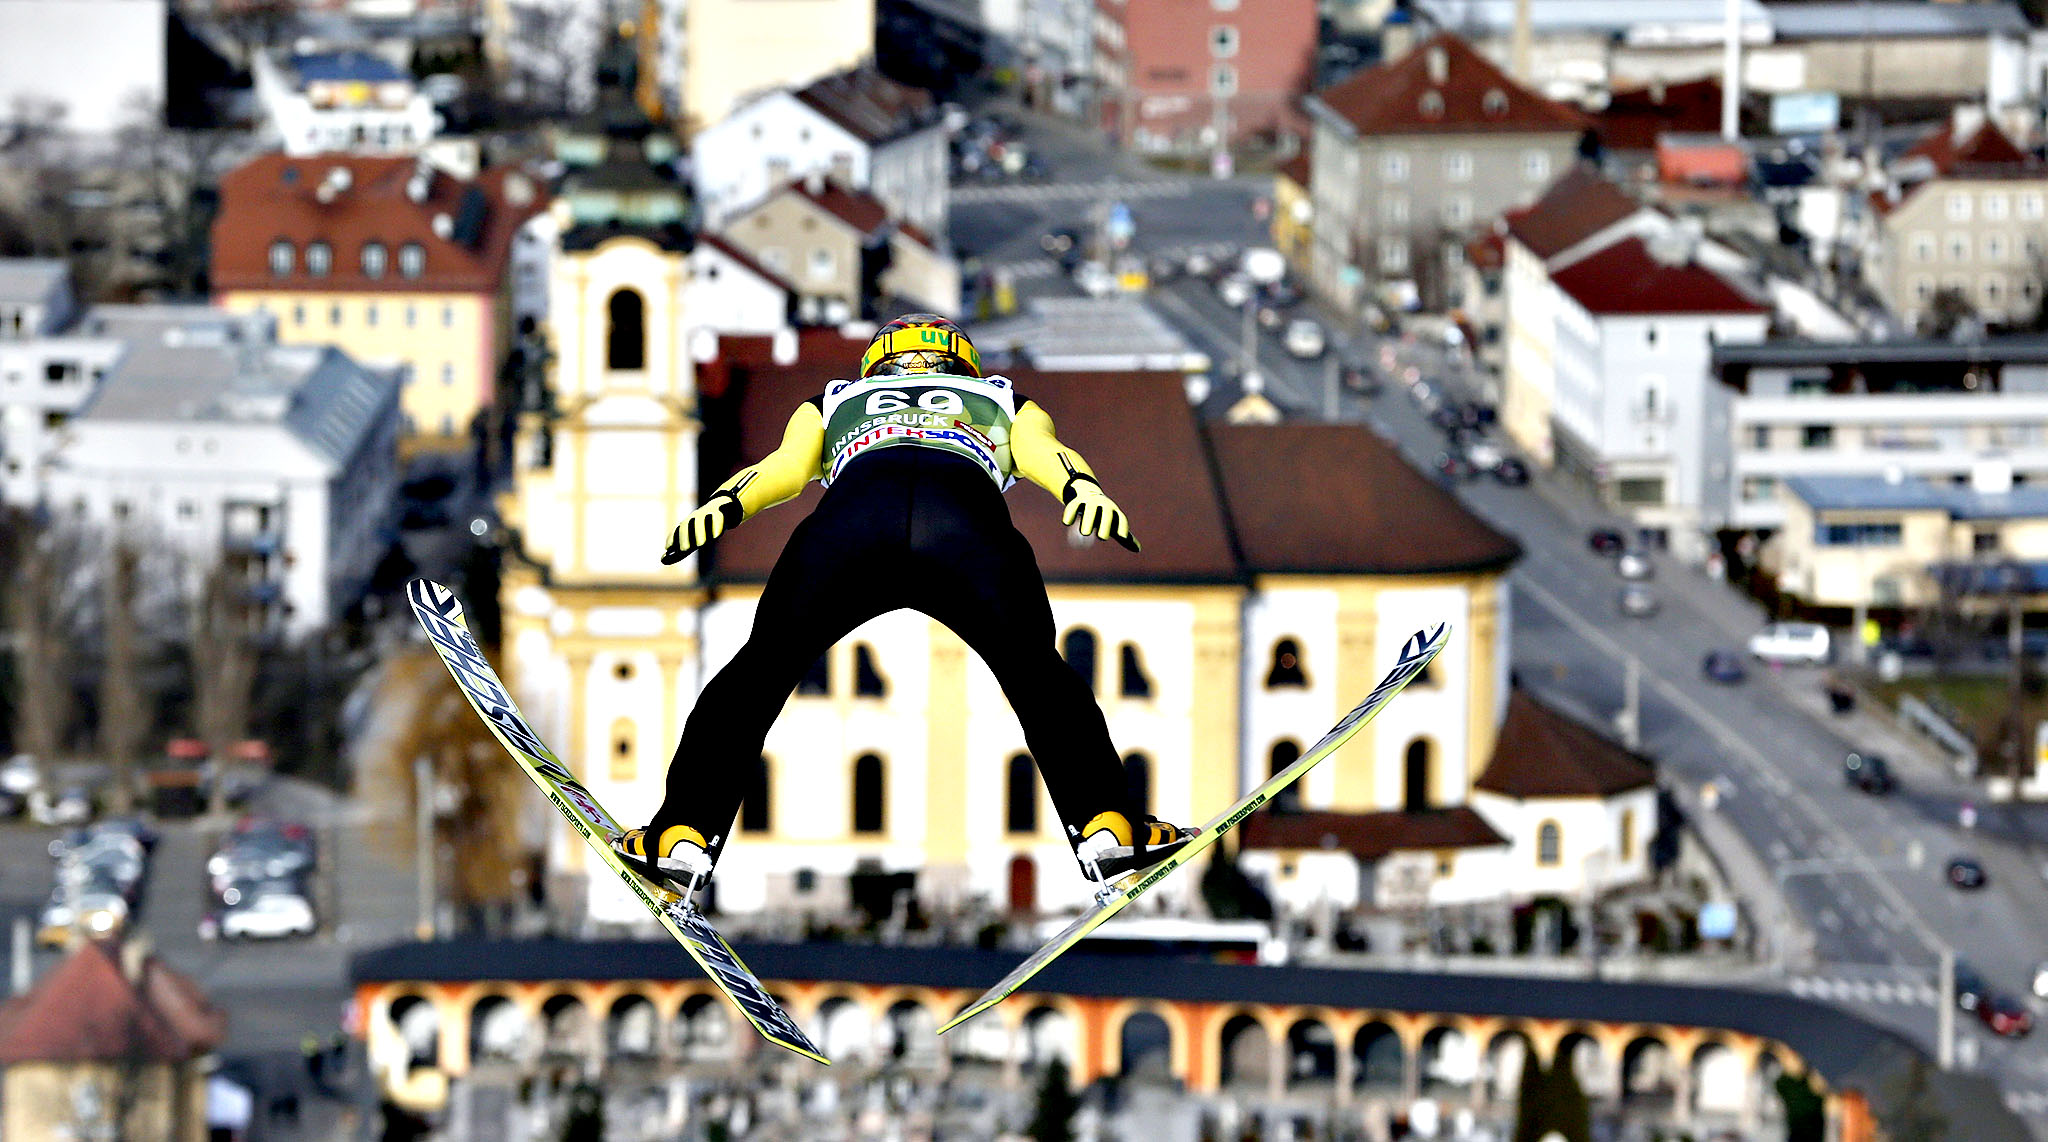 Japan's Noriaki Kasai soars in front of the Wilten Basilica during his trial jump at the third stage of the four hills ski jumping tournament in Innsbruck, Austria, Friday, Jan. 3, 2014.